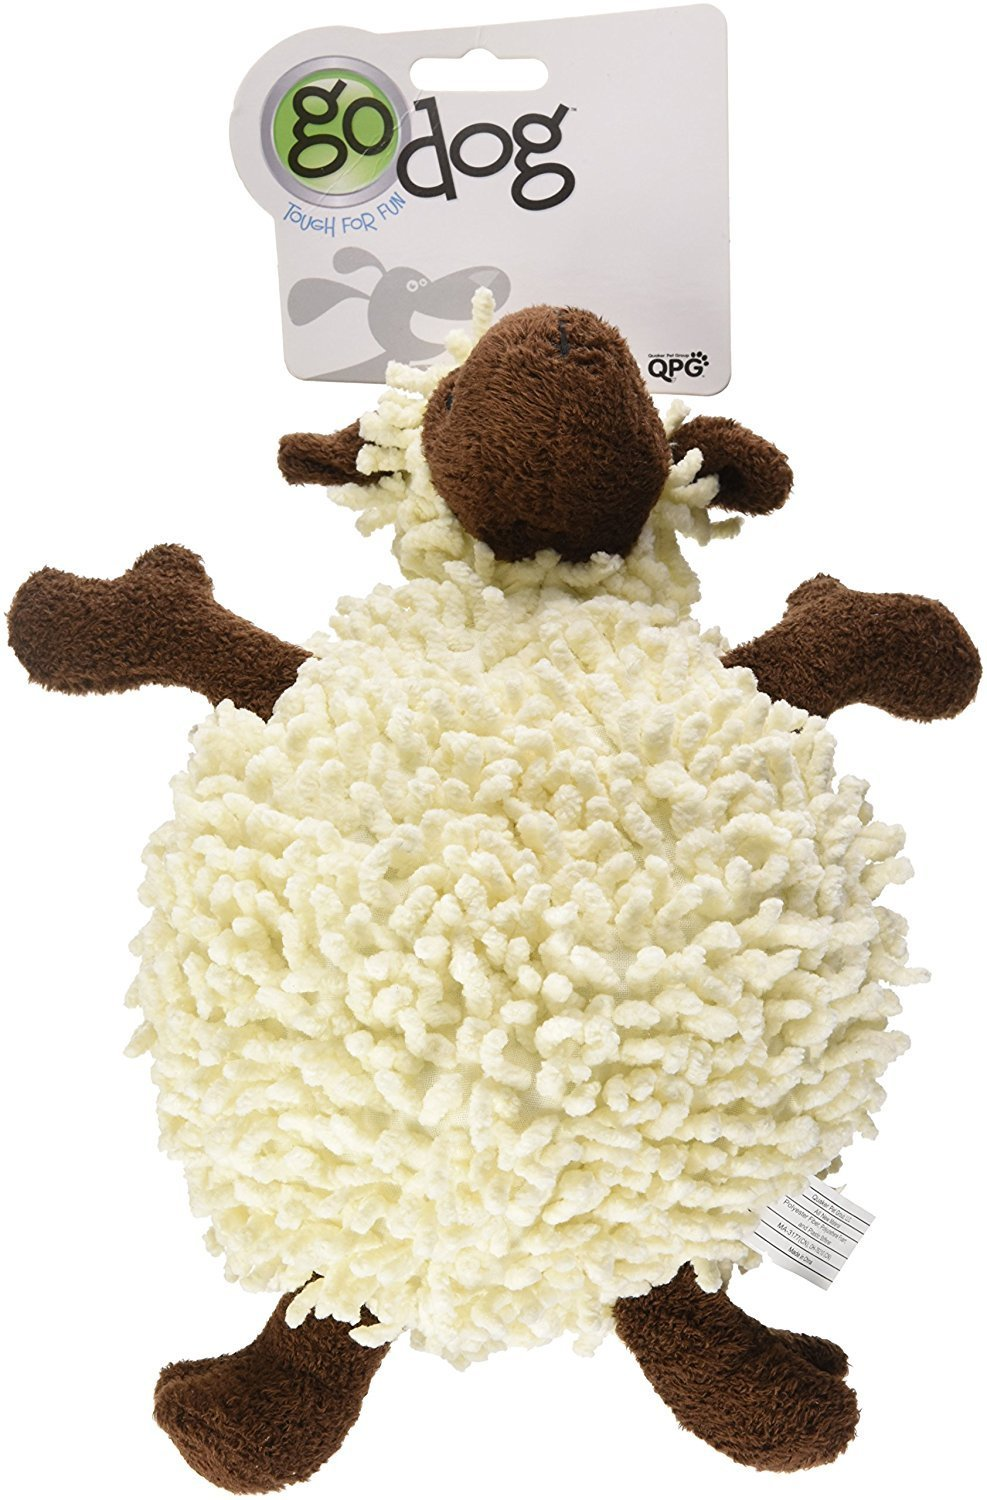 Dog Toys For Dogs, Fuzzy Wuzzy Sheep Tough Squeaky Cute Stuffed Dog Chew Toy